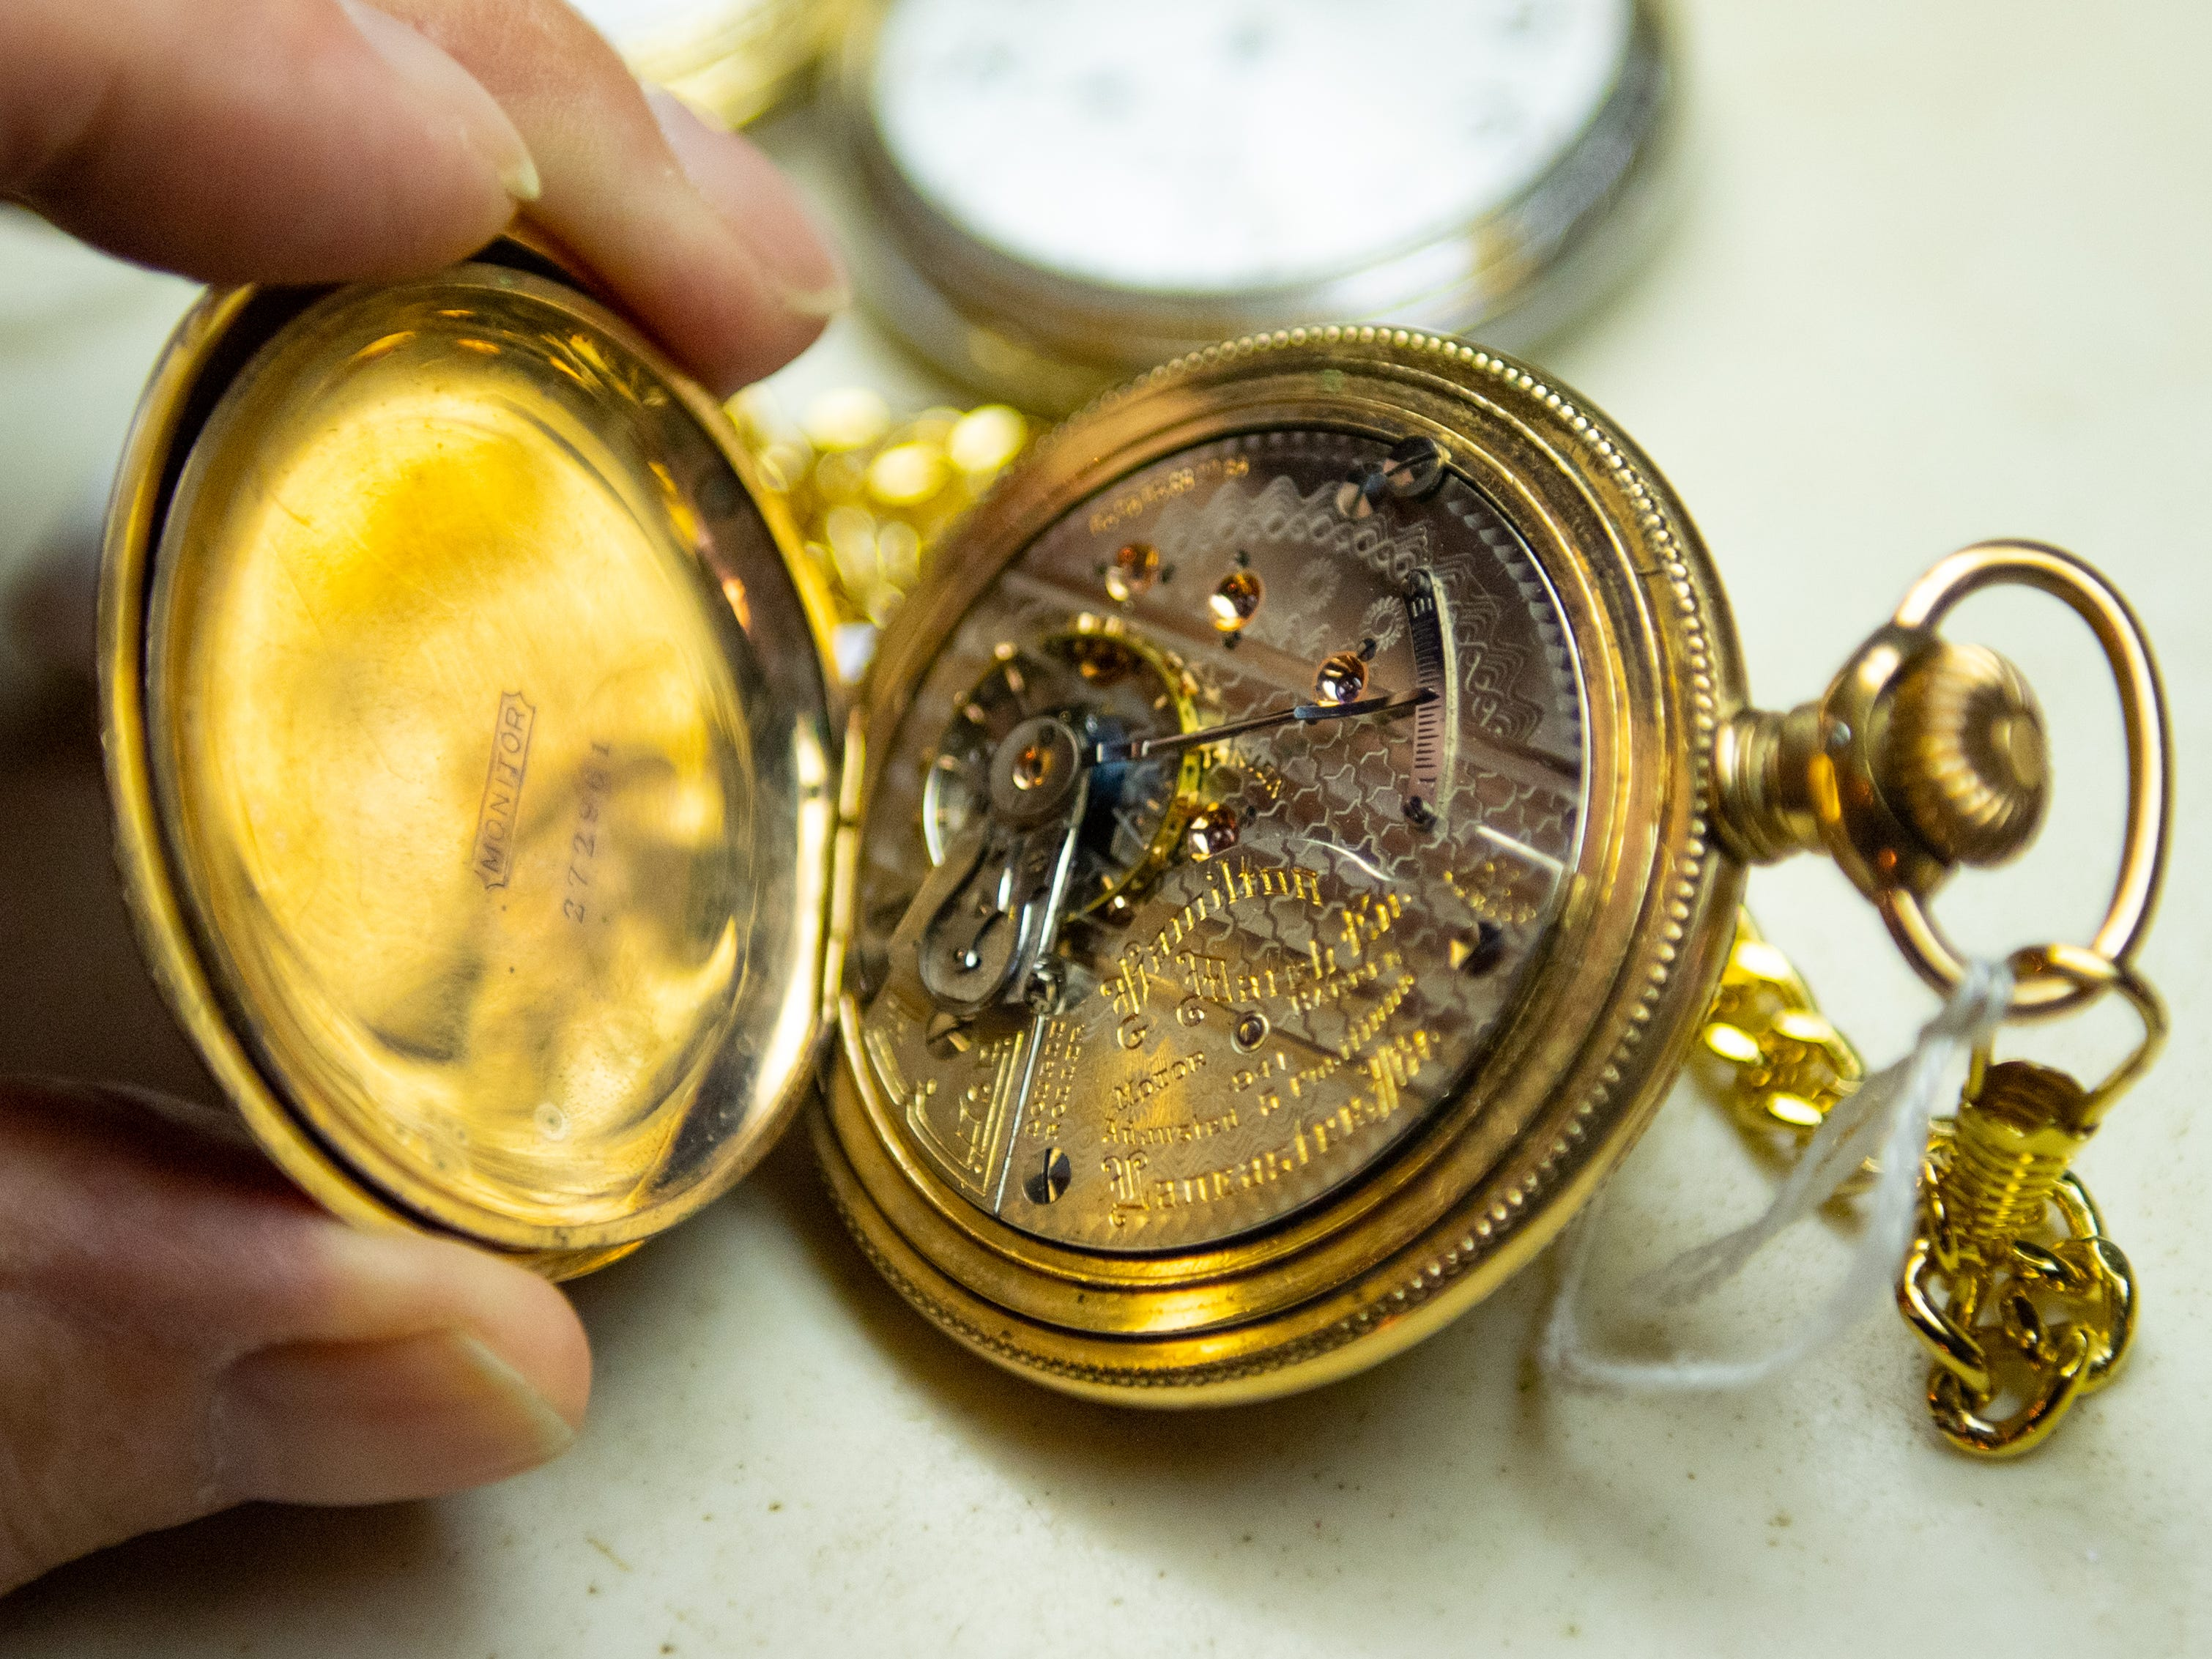 Ron Botterbusch, 85, keeps his personal watches in mint condition.